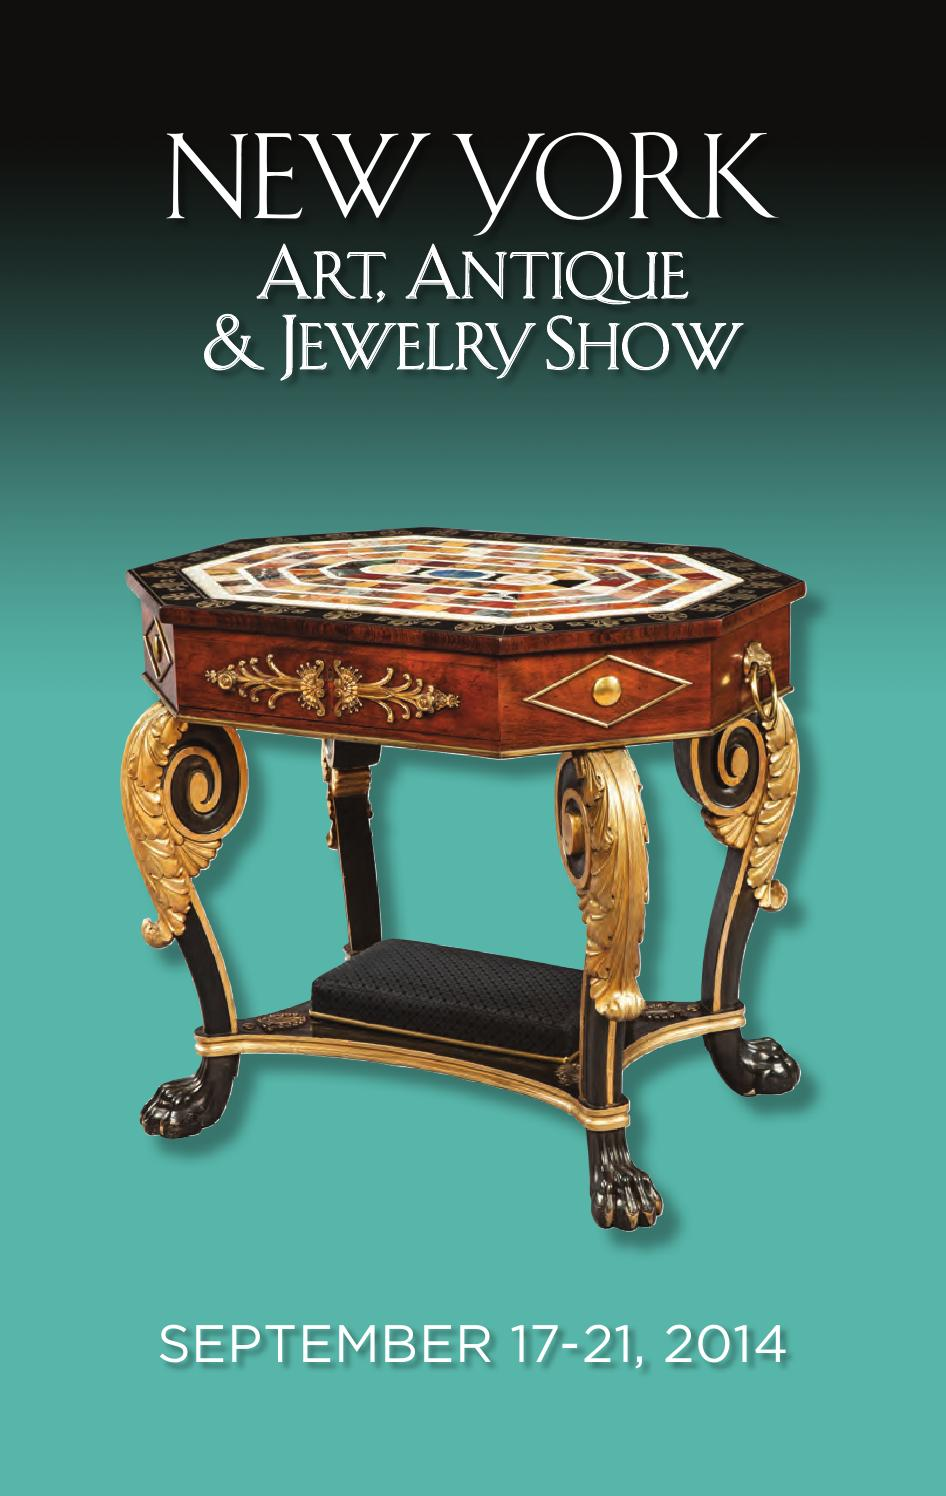 New york art antique and jewelry show 2014 by palm beach for Antique jewelry stores nyc